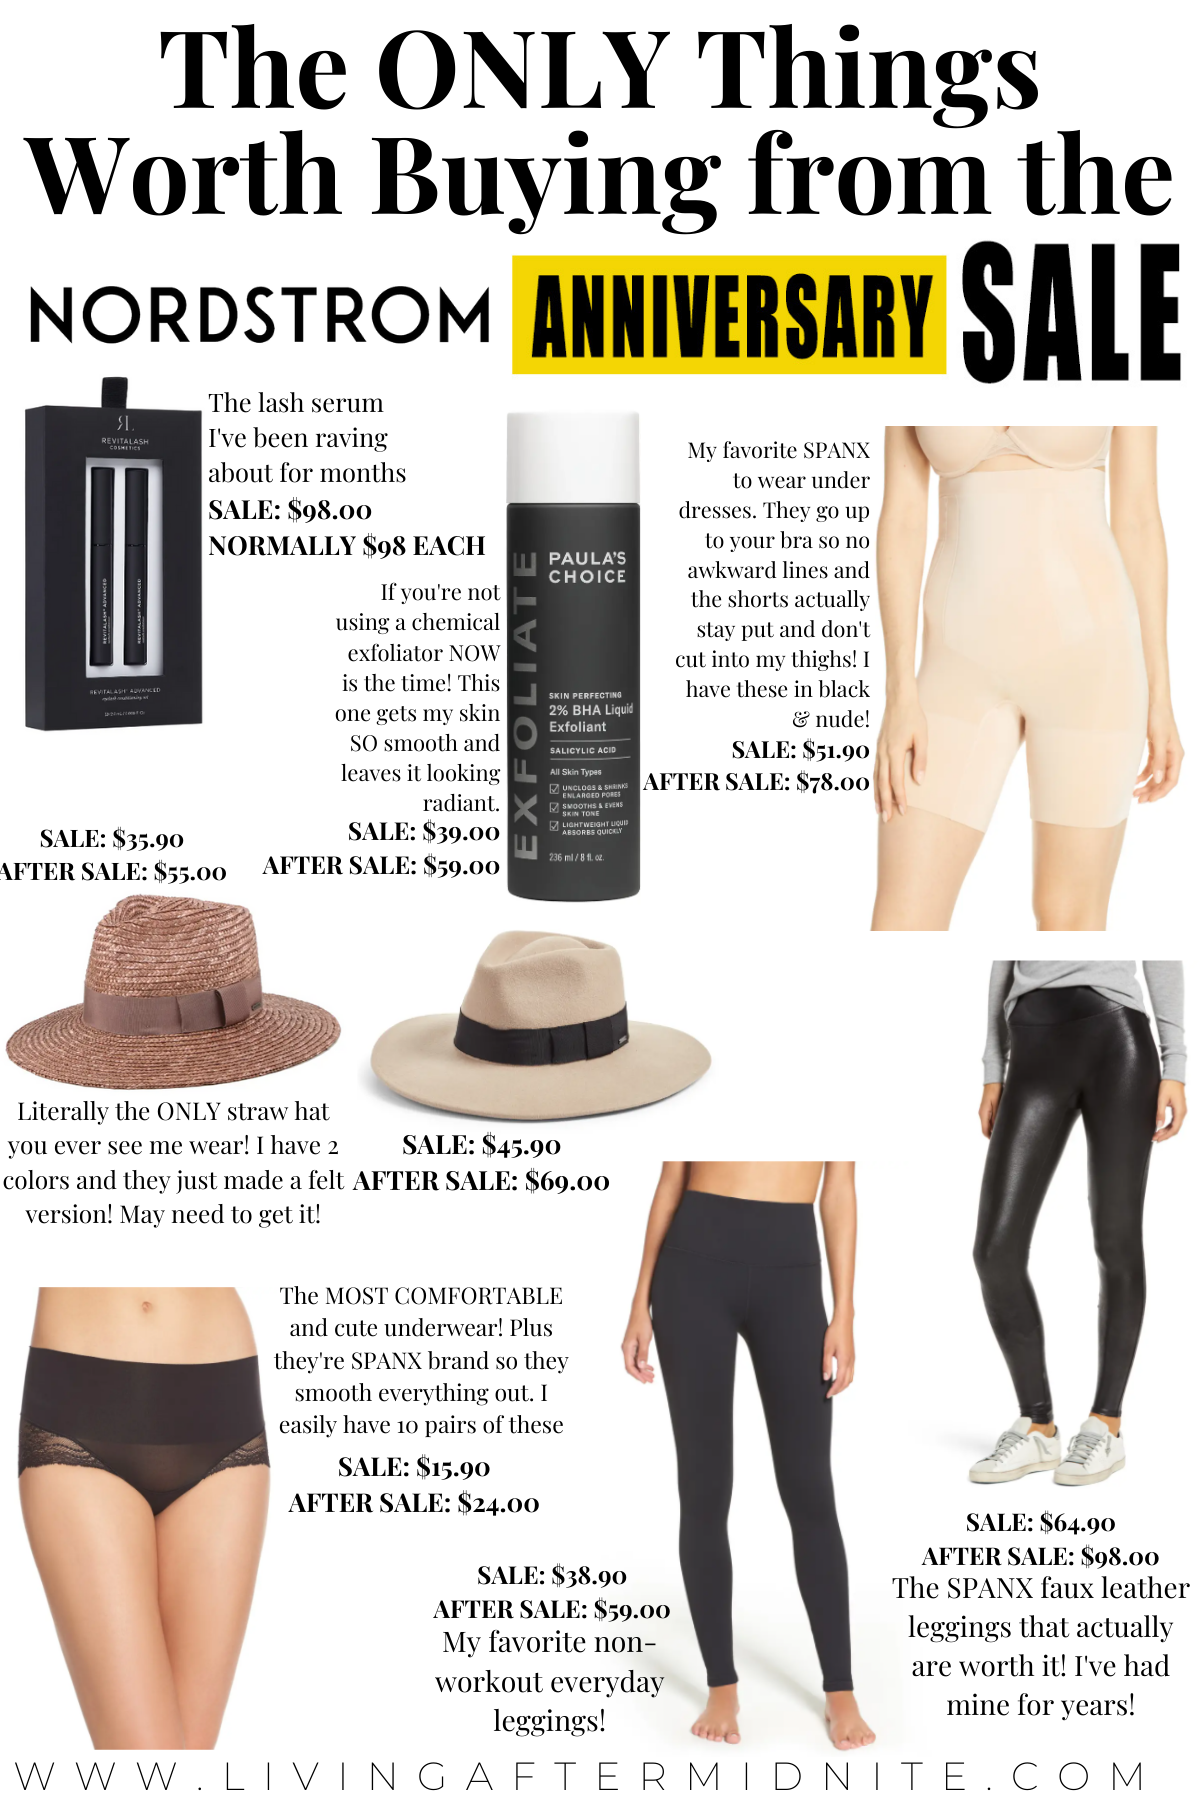 The ONLY Things Worth Buying from the Nordstrom Anniversary Sale   Is the Nordstrom Anniversary Sale Worth It?   Spanx   Revitalash   Zella Leggings   Brixton Hat   Paula's Choice